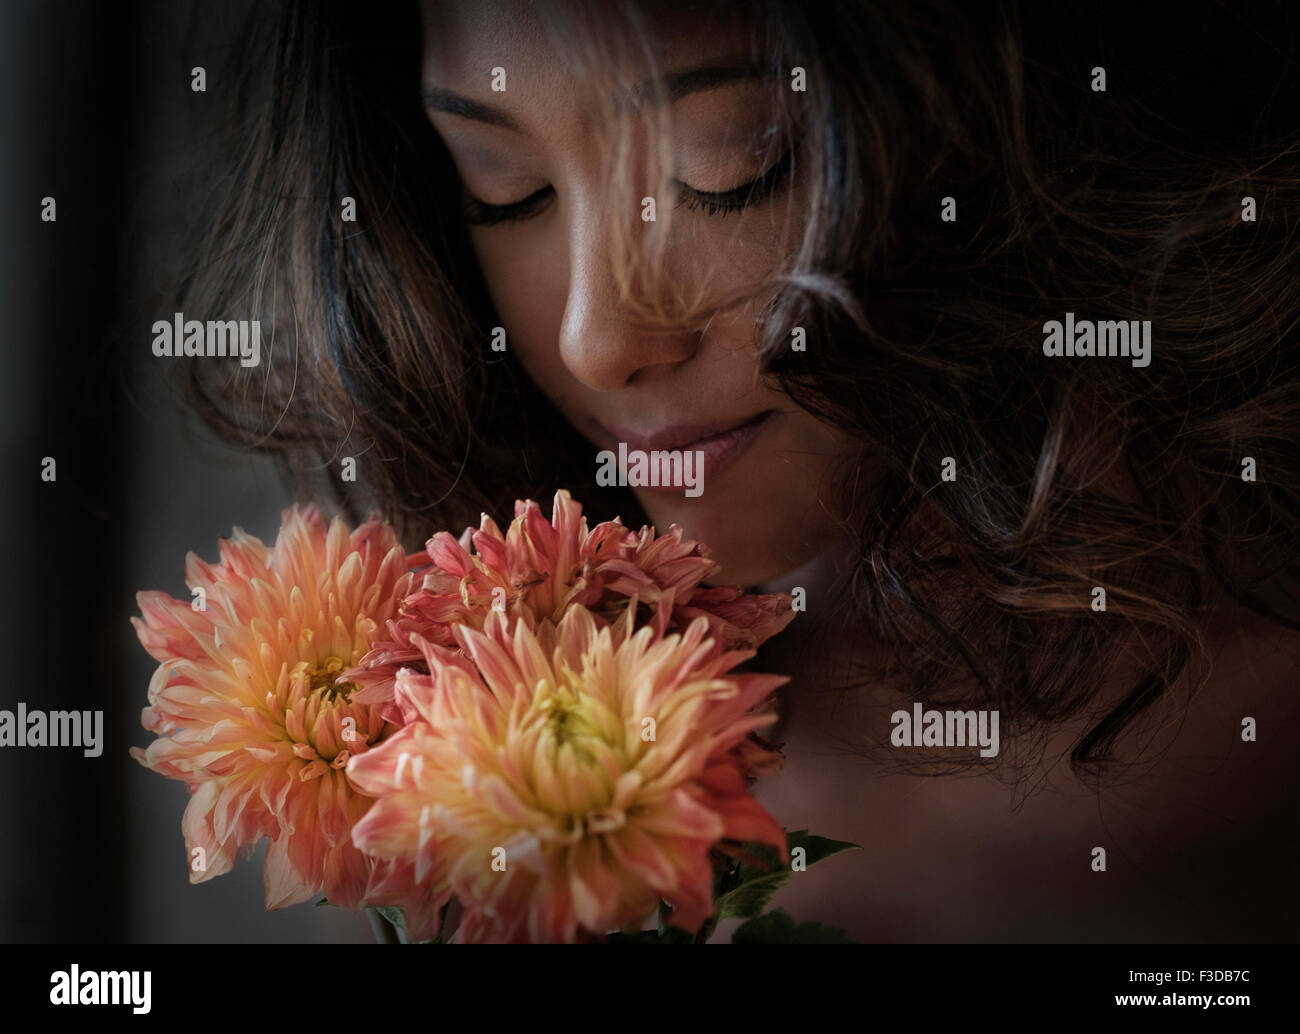 Young woman smelling flowers - Stock Image